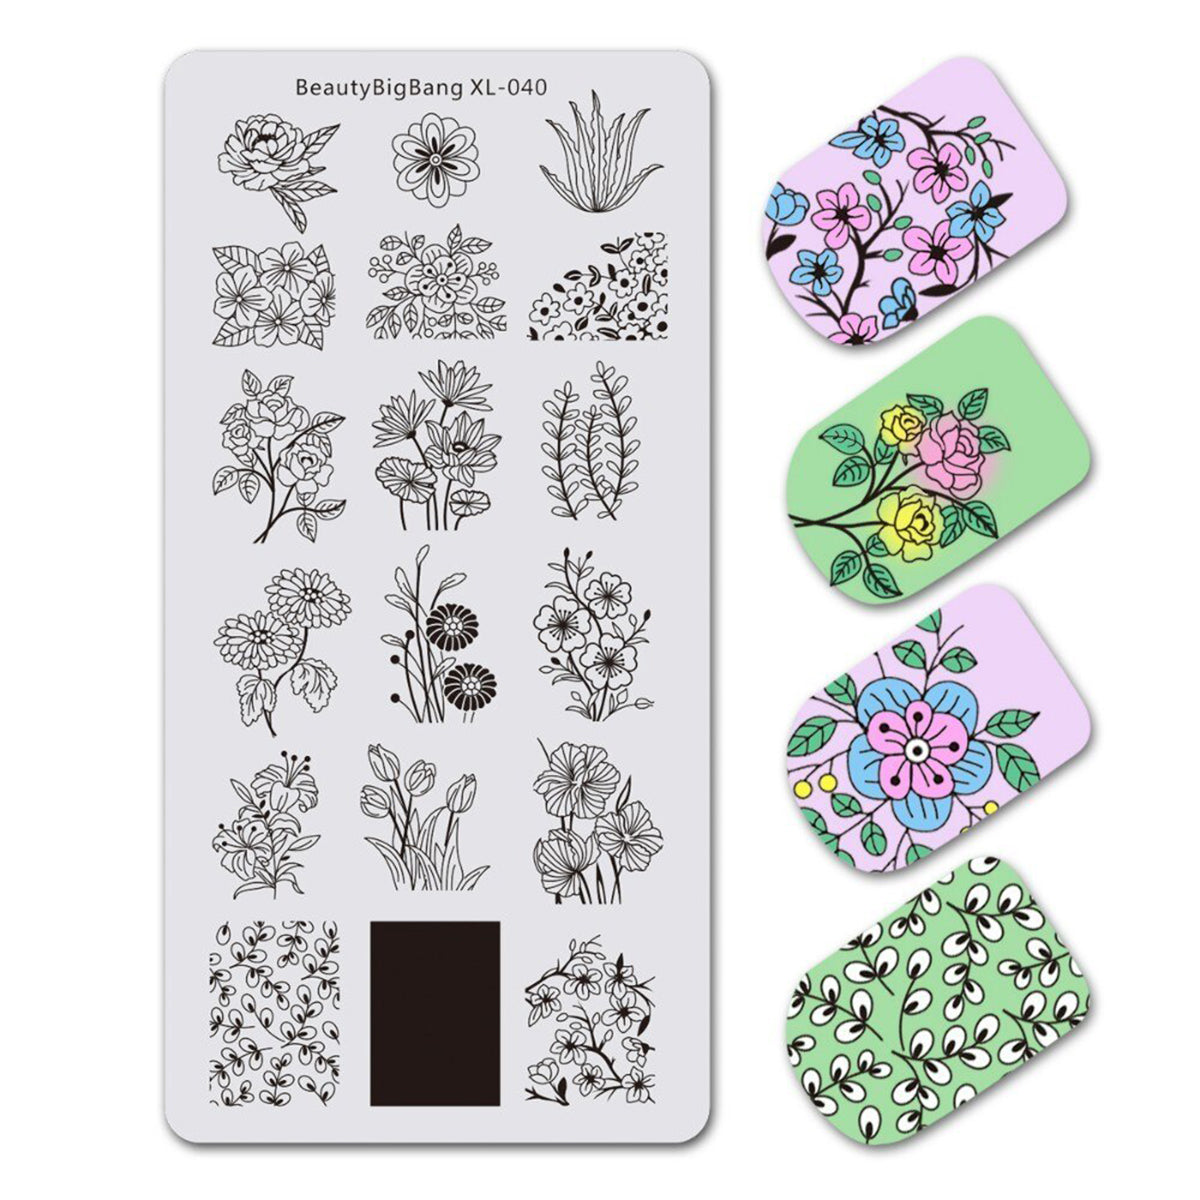 14 Different Pattern Nail Stamping Plates